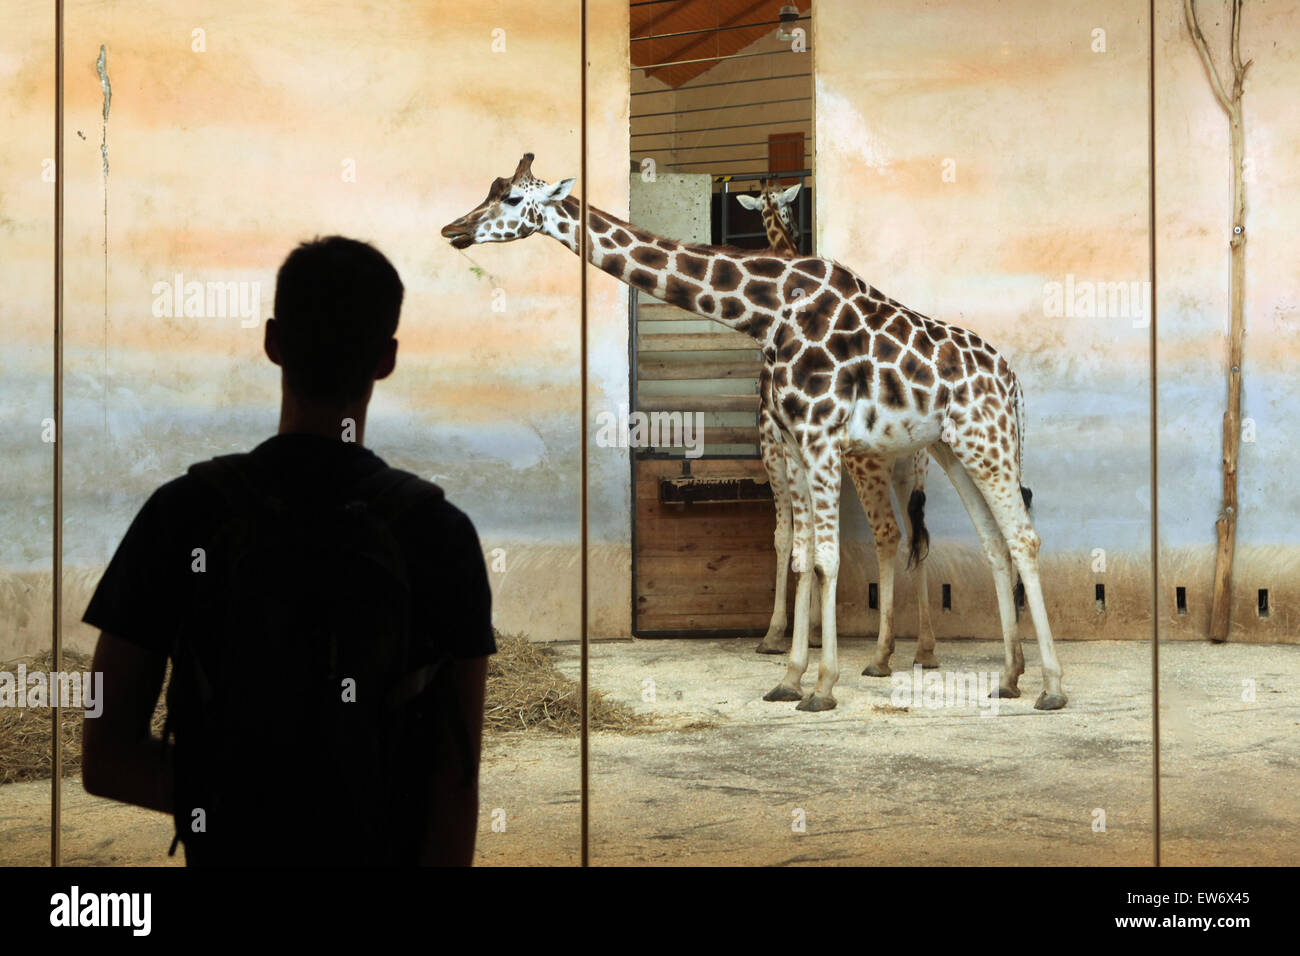 Visitor looks at the Rothschild's giraffe (Giraffa camelopardalis rothschildi) at Prague Zoo, Czech Republic. - Stock Image